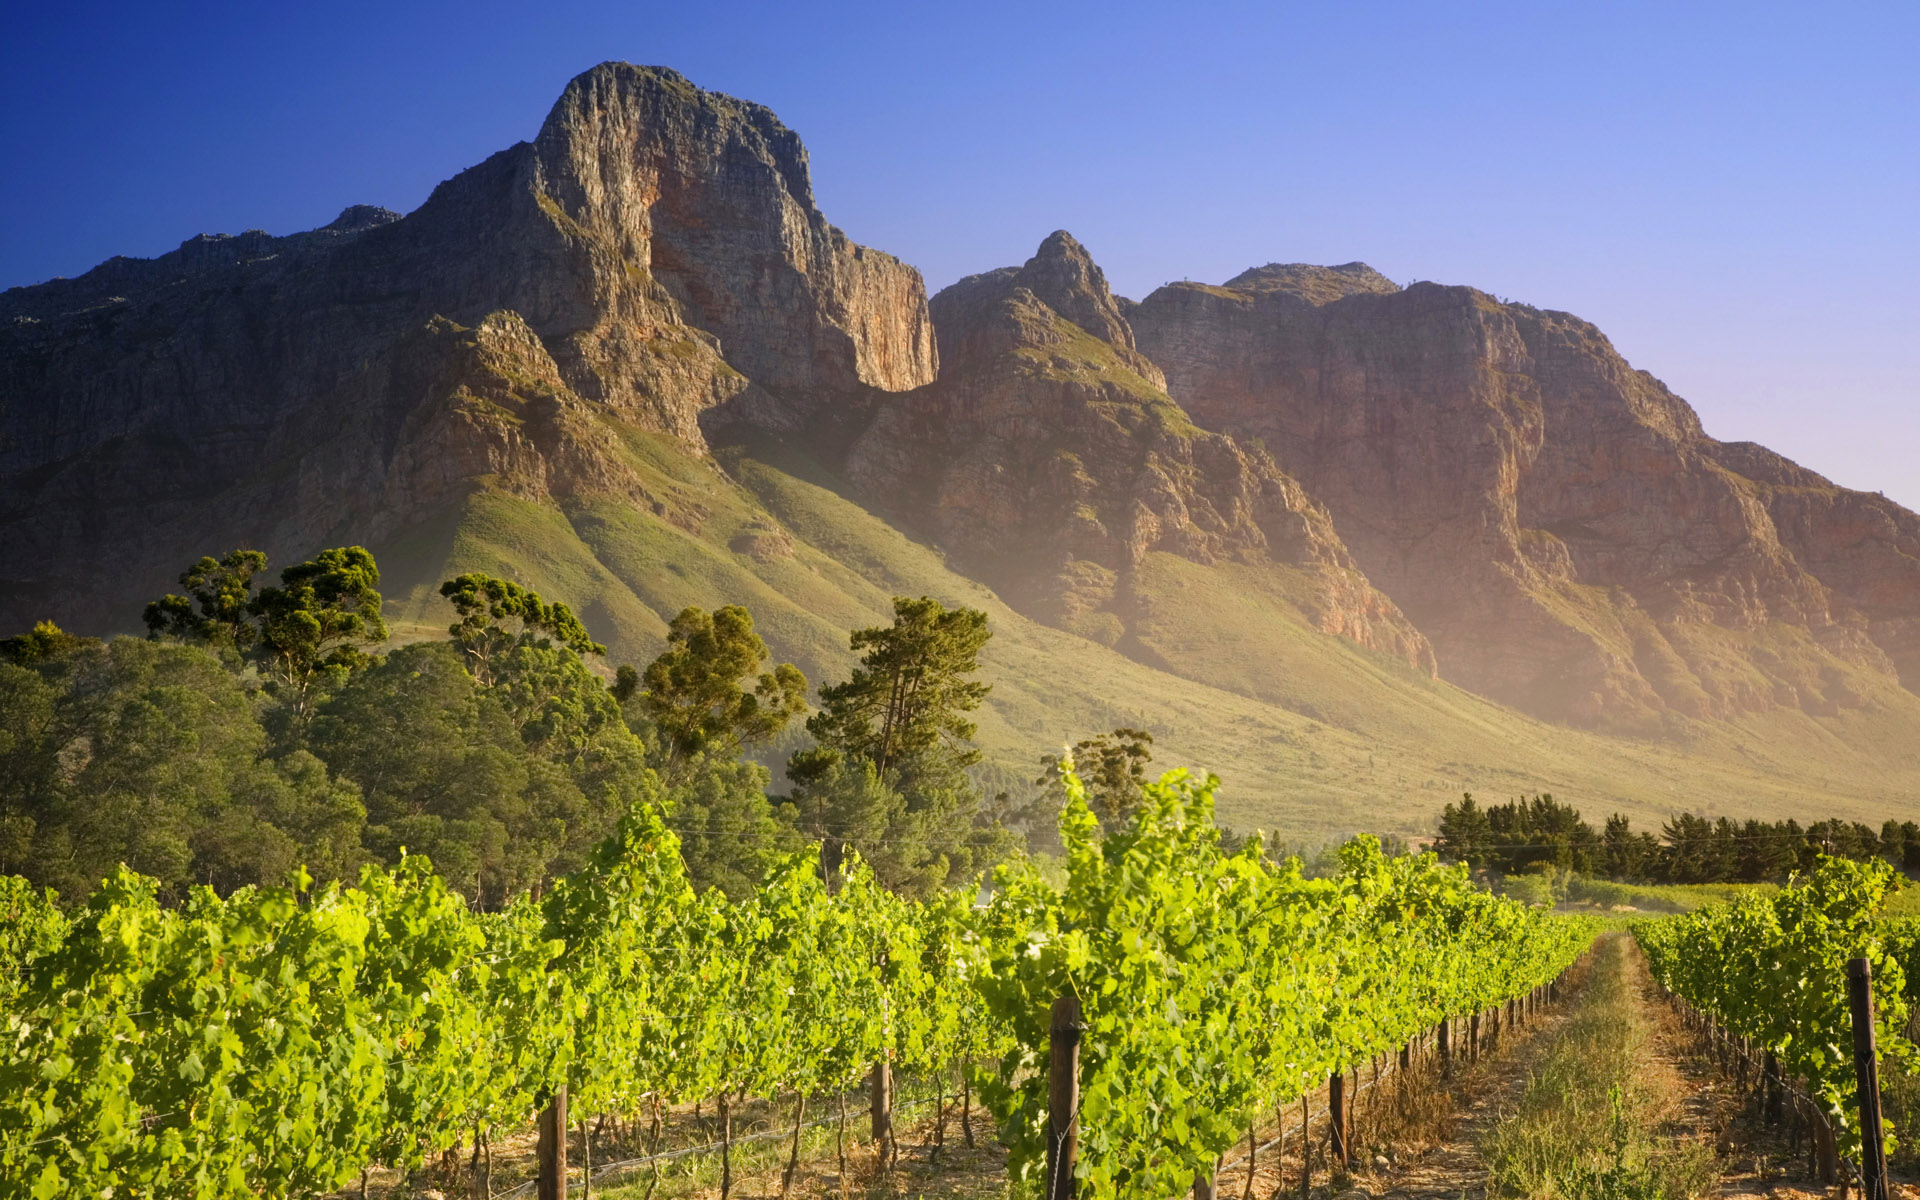 The world wine industry is shifting from old to new world